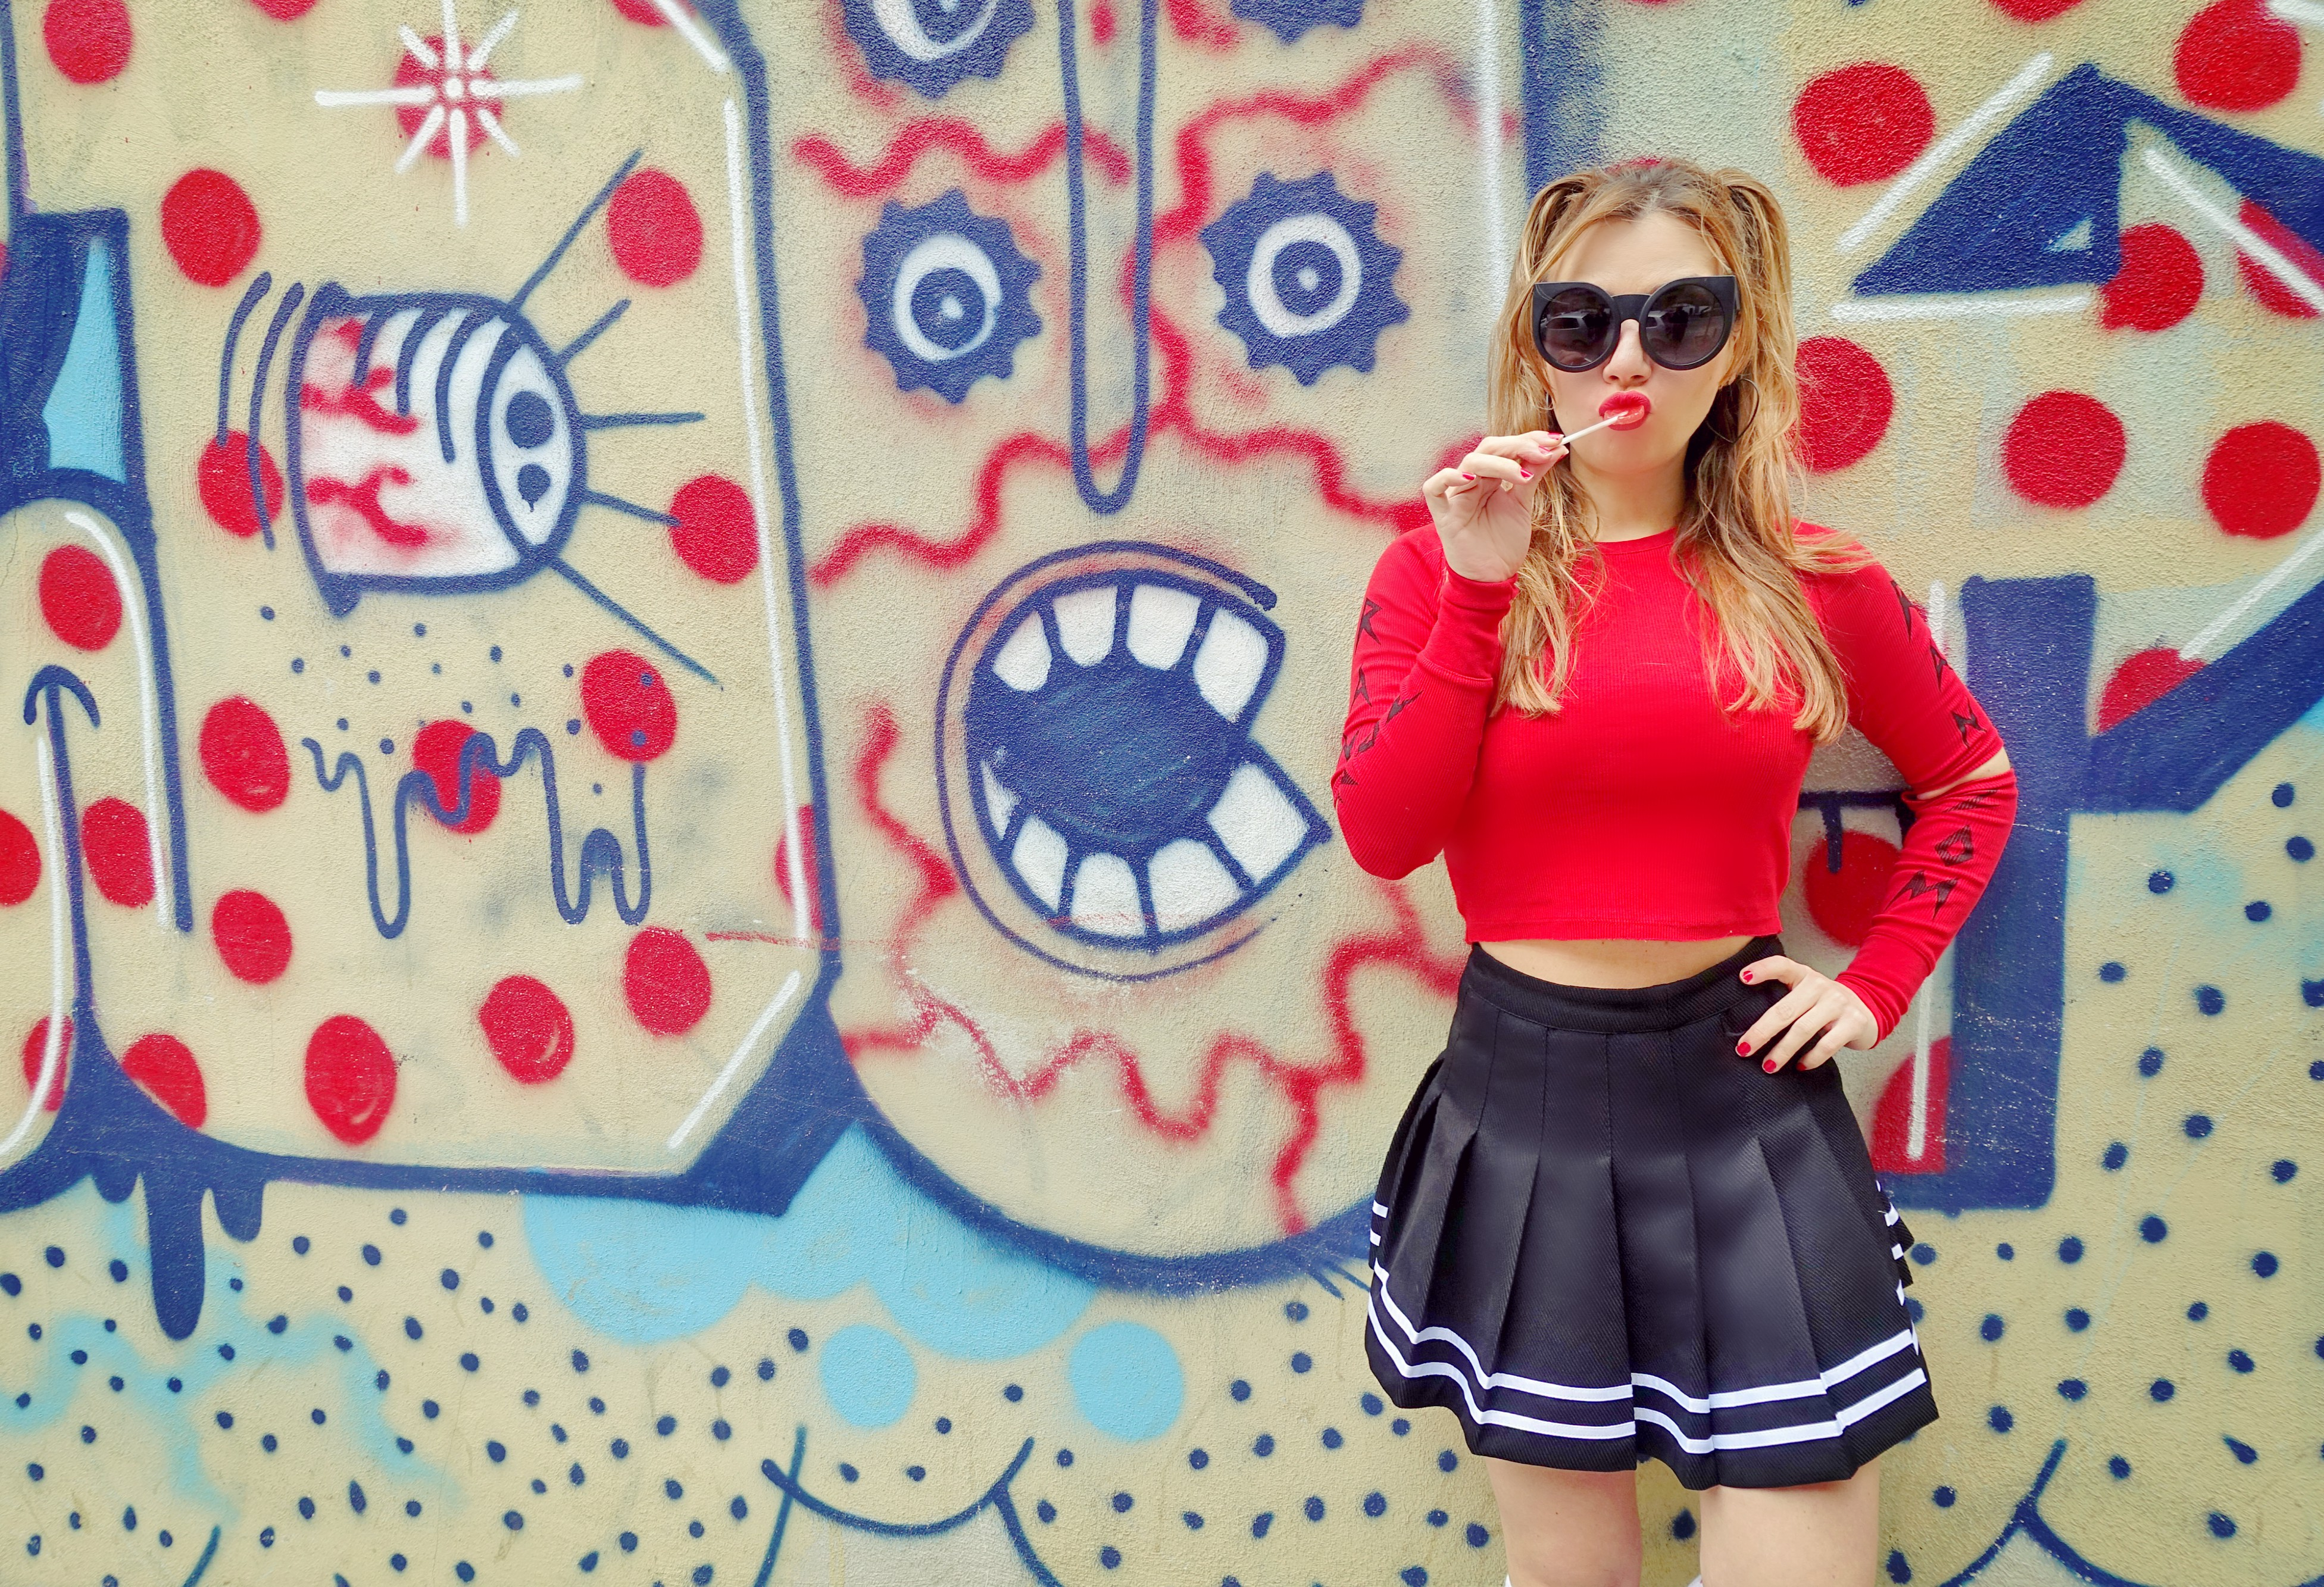 Lolita-look-cheerleader-outfit-blog-de-moda-ChicAdicta-influencer-Madrid-Chic-Adicta-falda-de-pliegues-PiensaenChic-Piensa-en-Chic